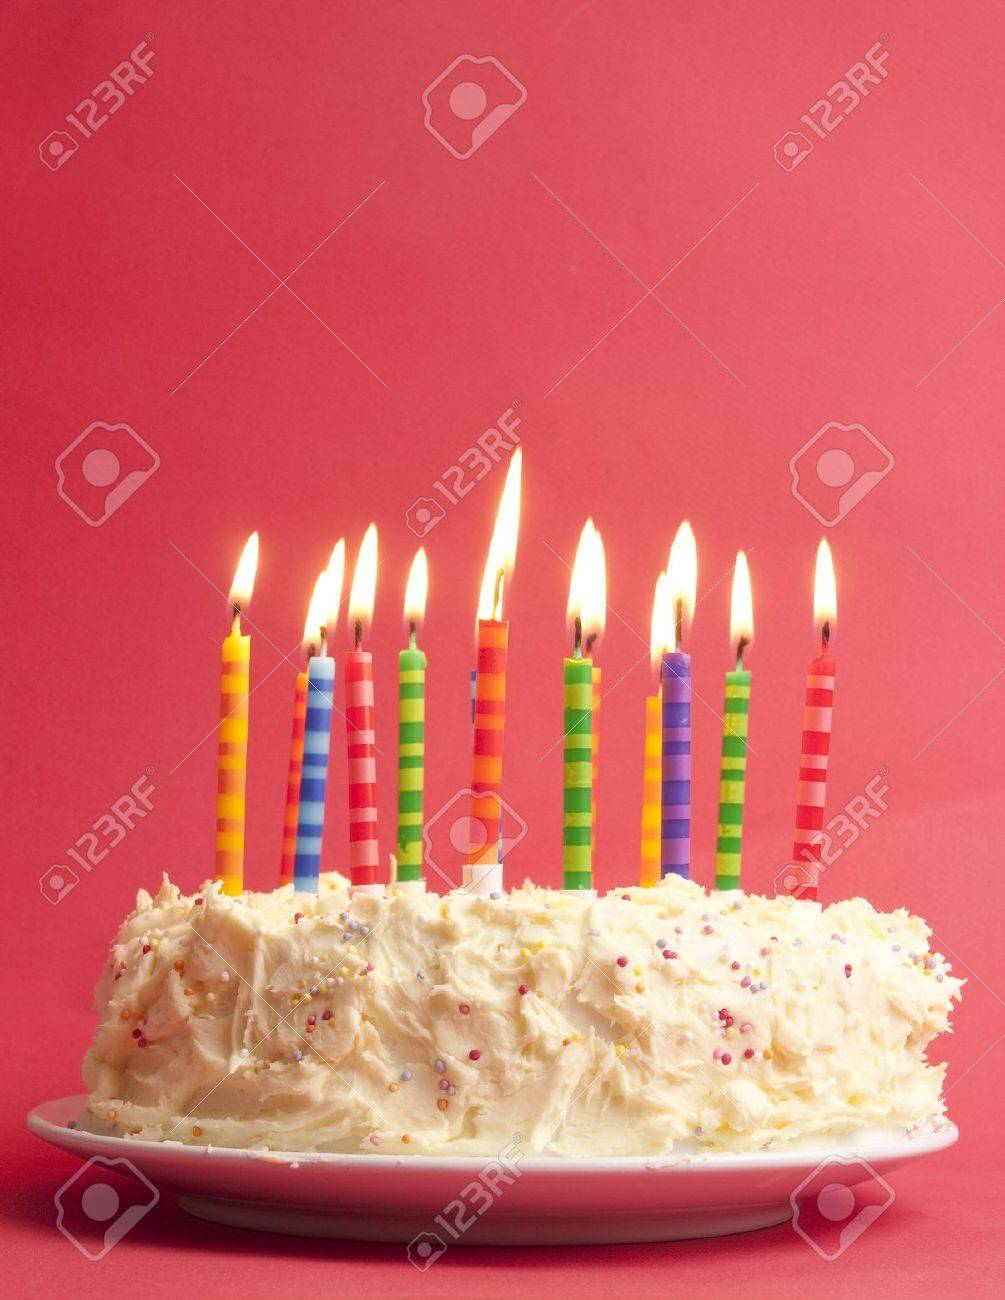 Birthday Cake With Lots Of Candles Birthday Cake With Lots Of Cute Striped Candles Shot On A Red